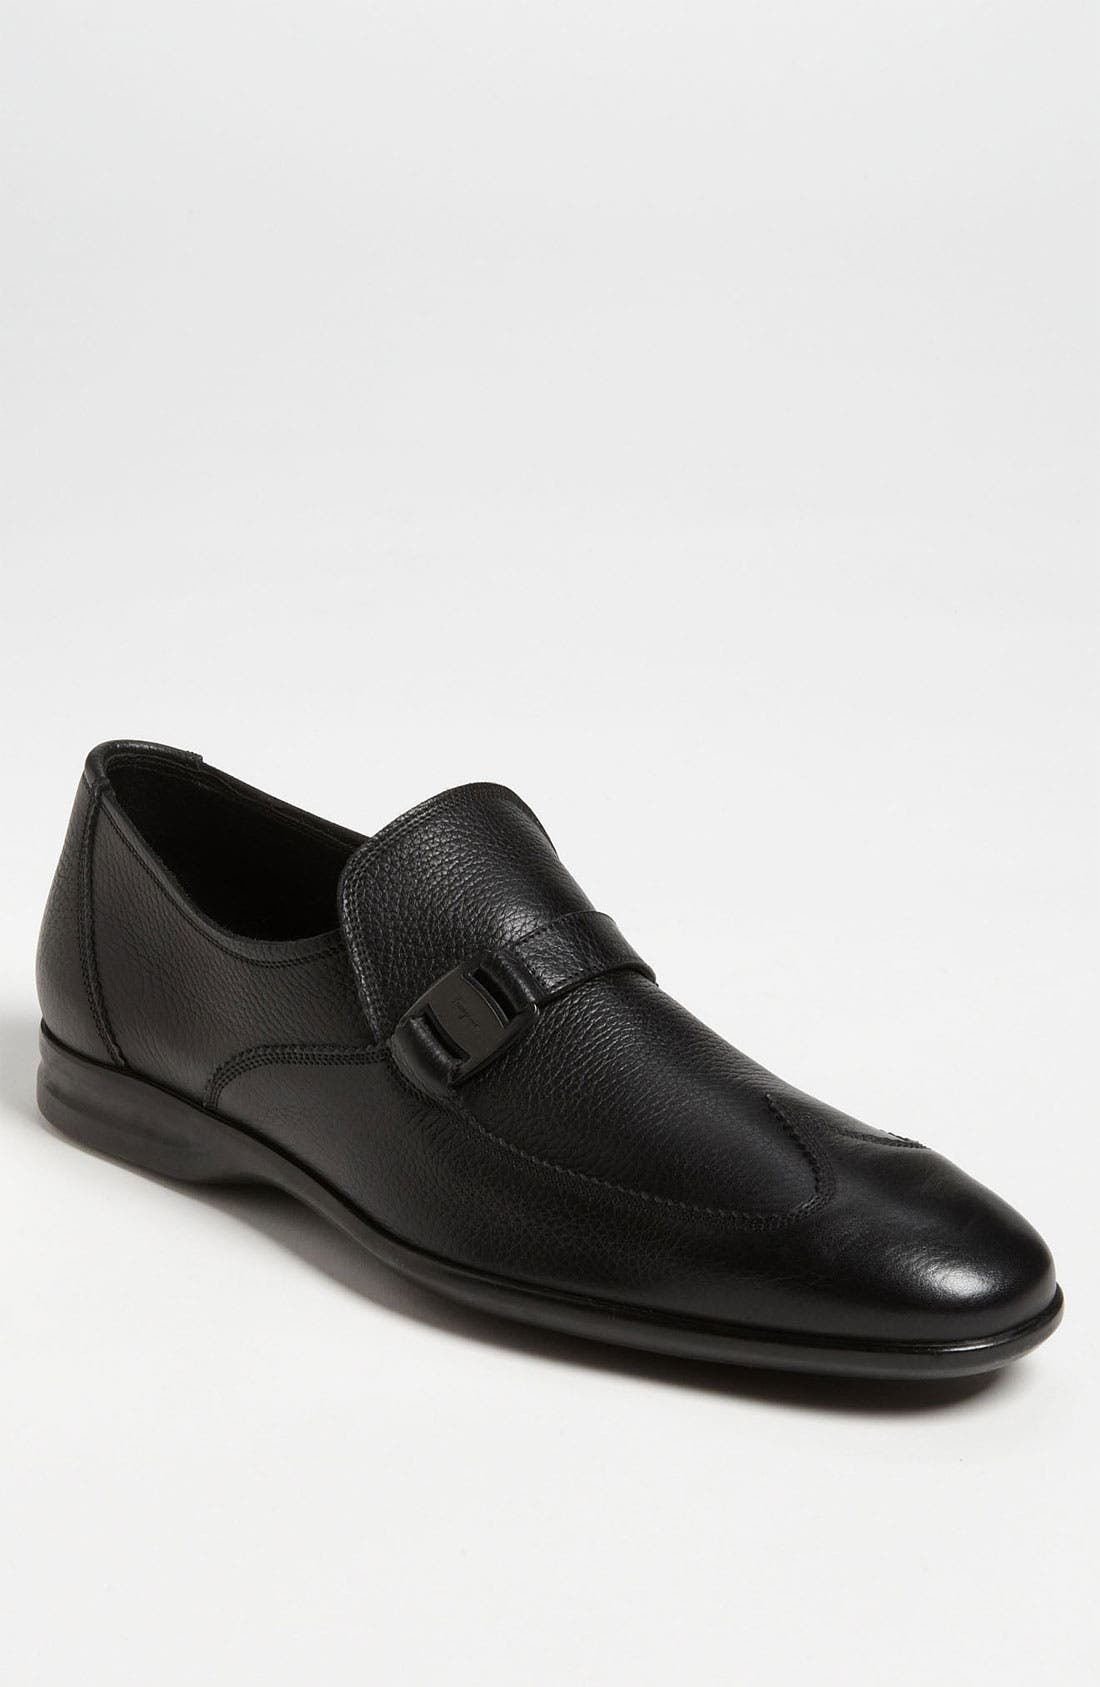 Main Image - Salvatore Ferragamo 'Tecno' Wingtip Loafer